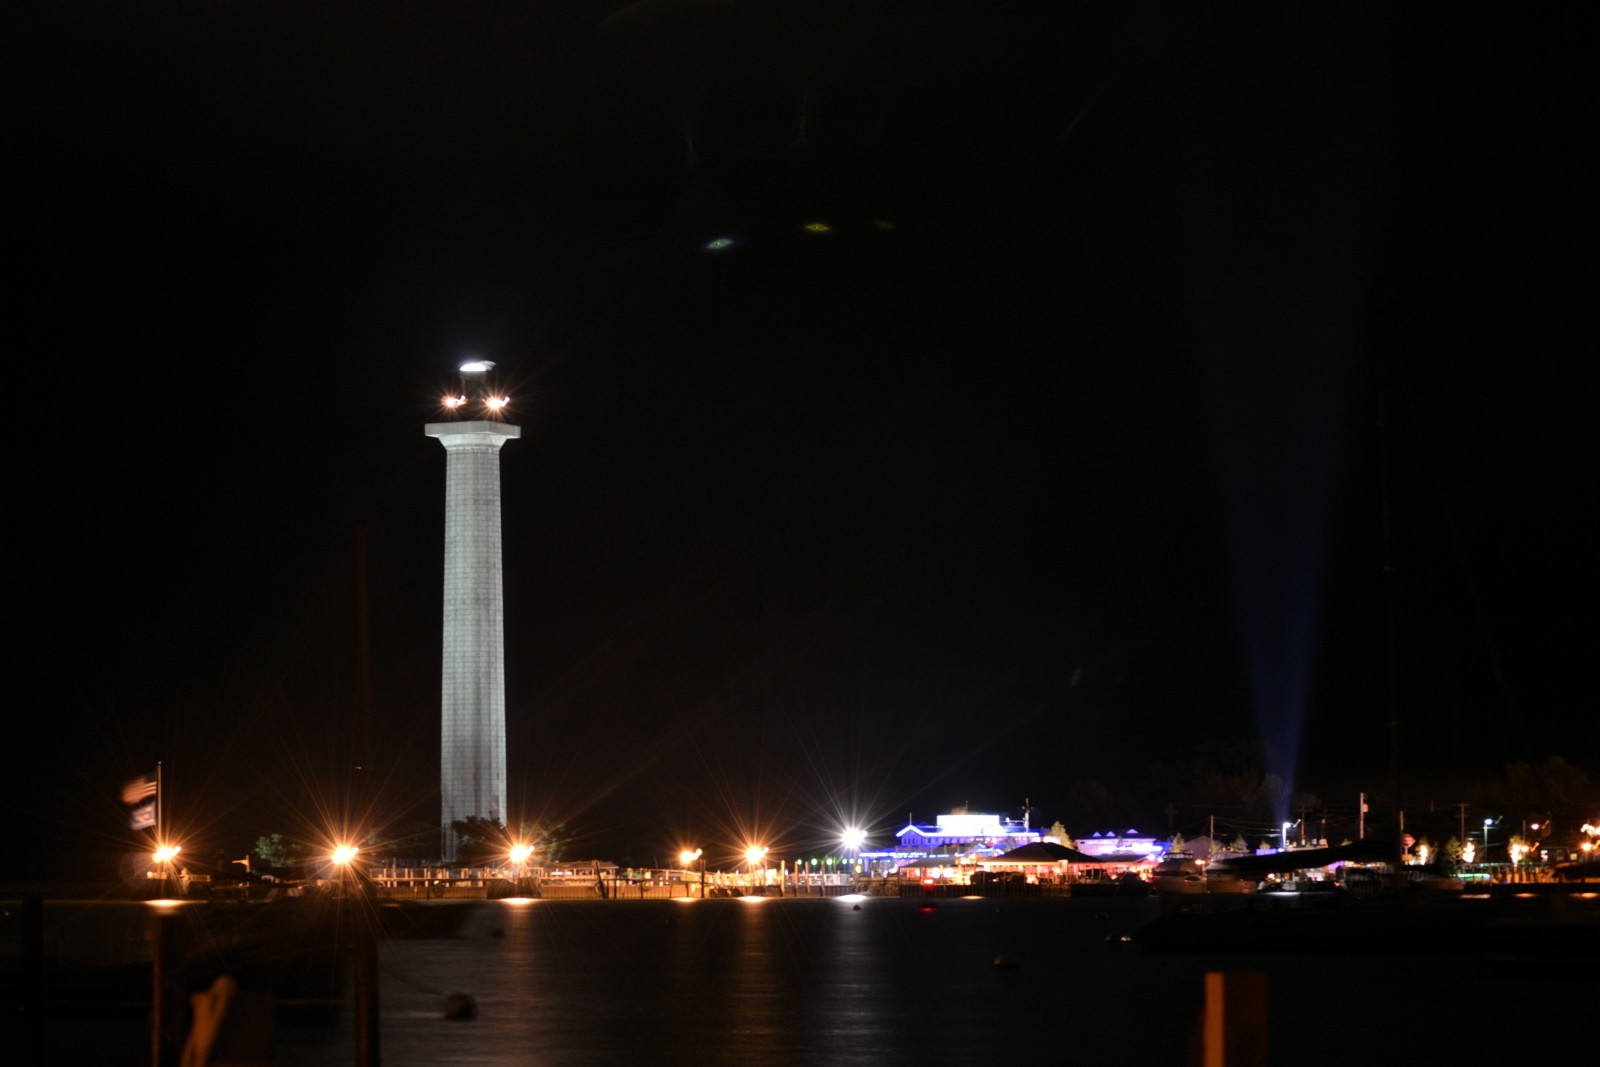 Perry's Monument at Night